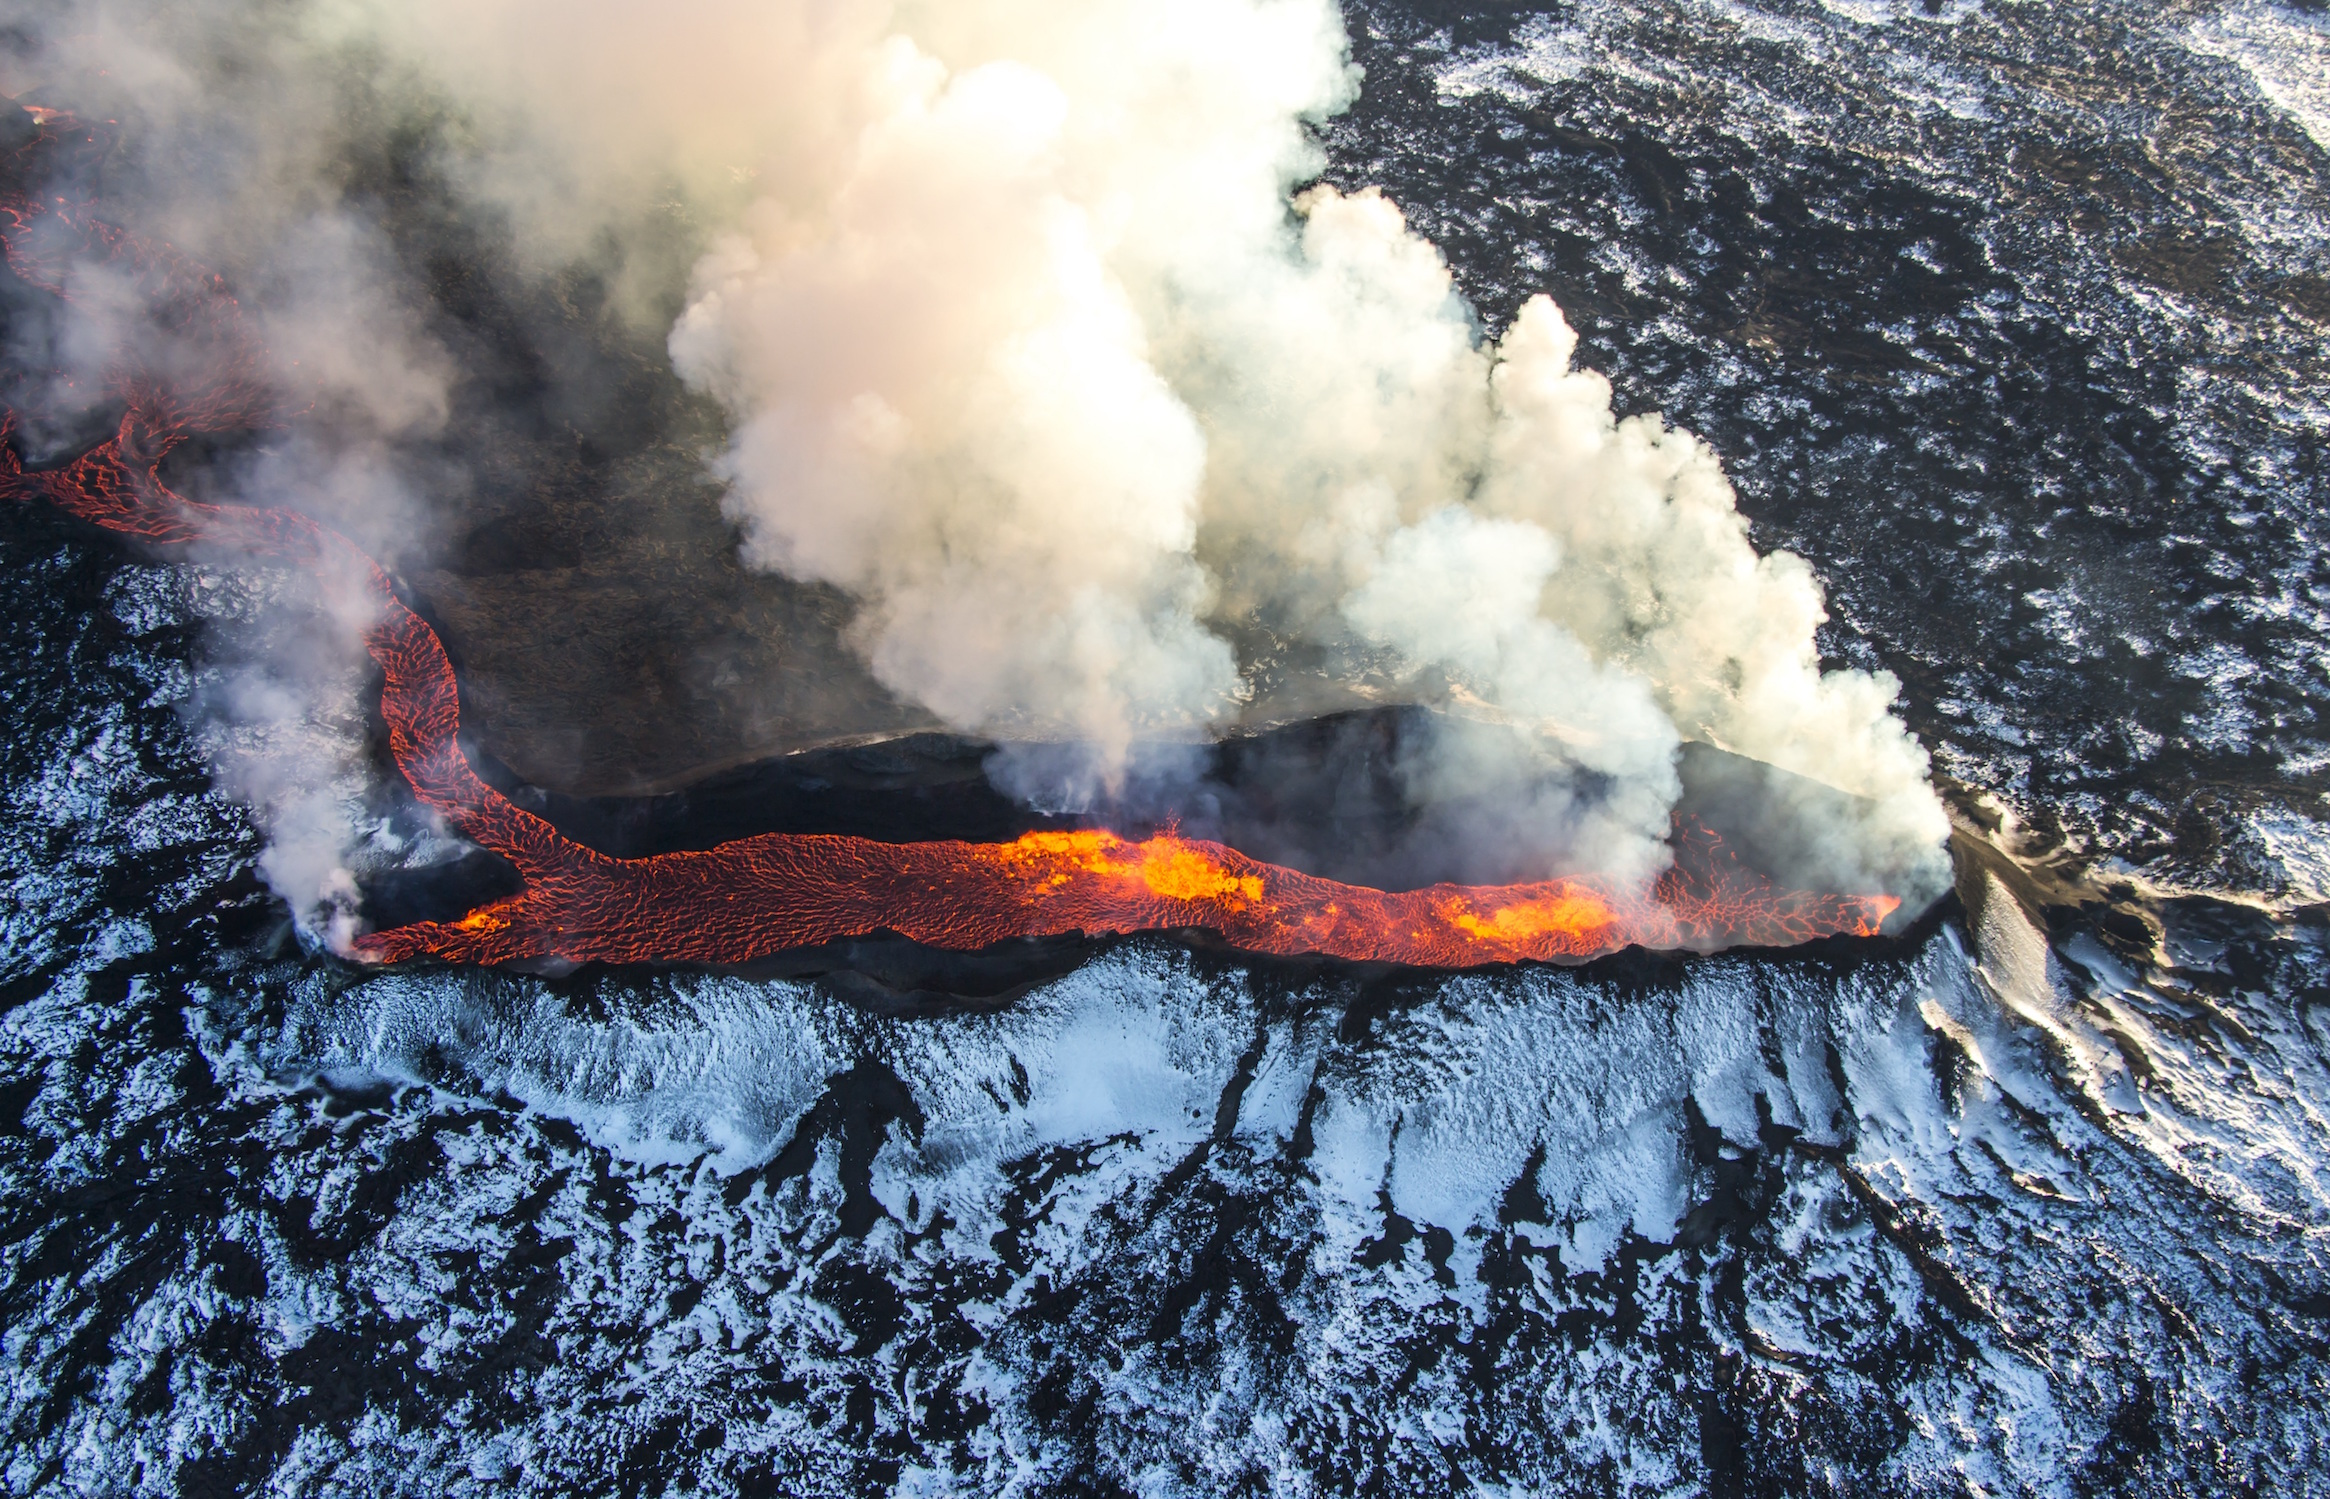 A new study has found that shrinking glaciers in Iceland caused by climate change could lead to increased volcanic activity.